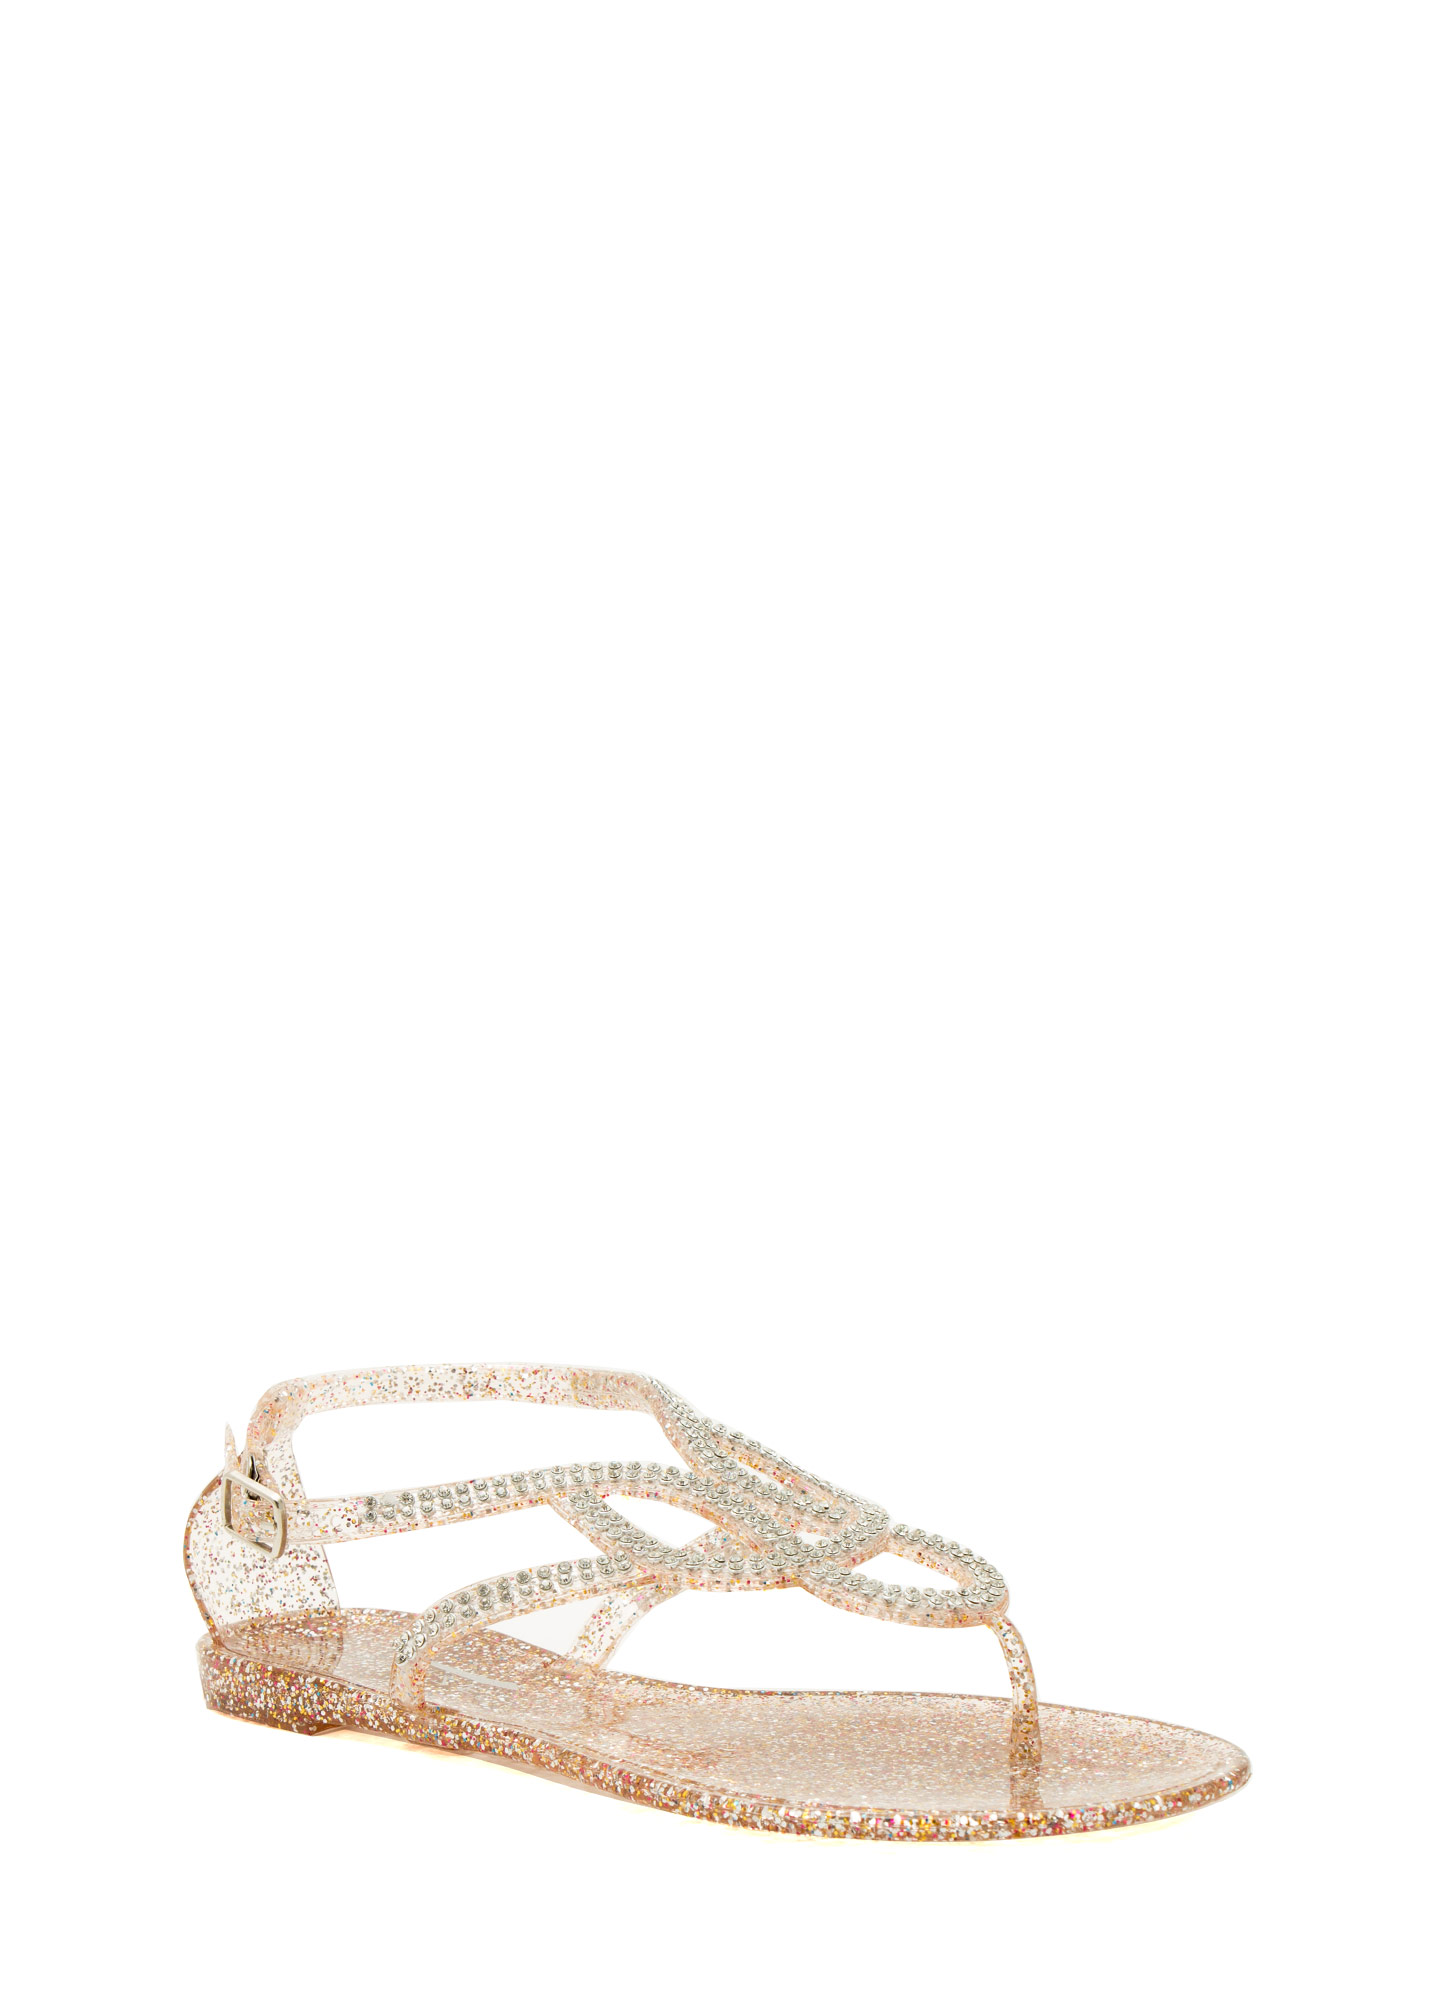 Grown Up Faux Jewel Jelly Sandals CLEARMULTI